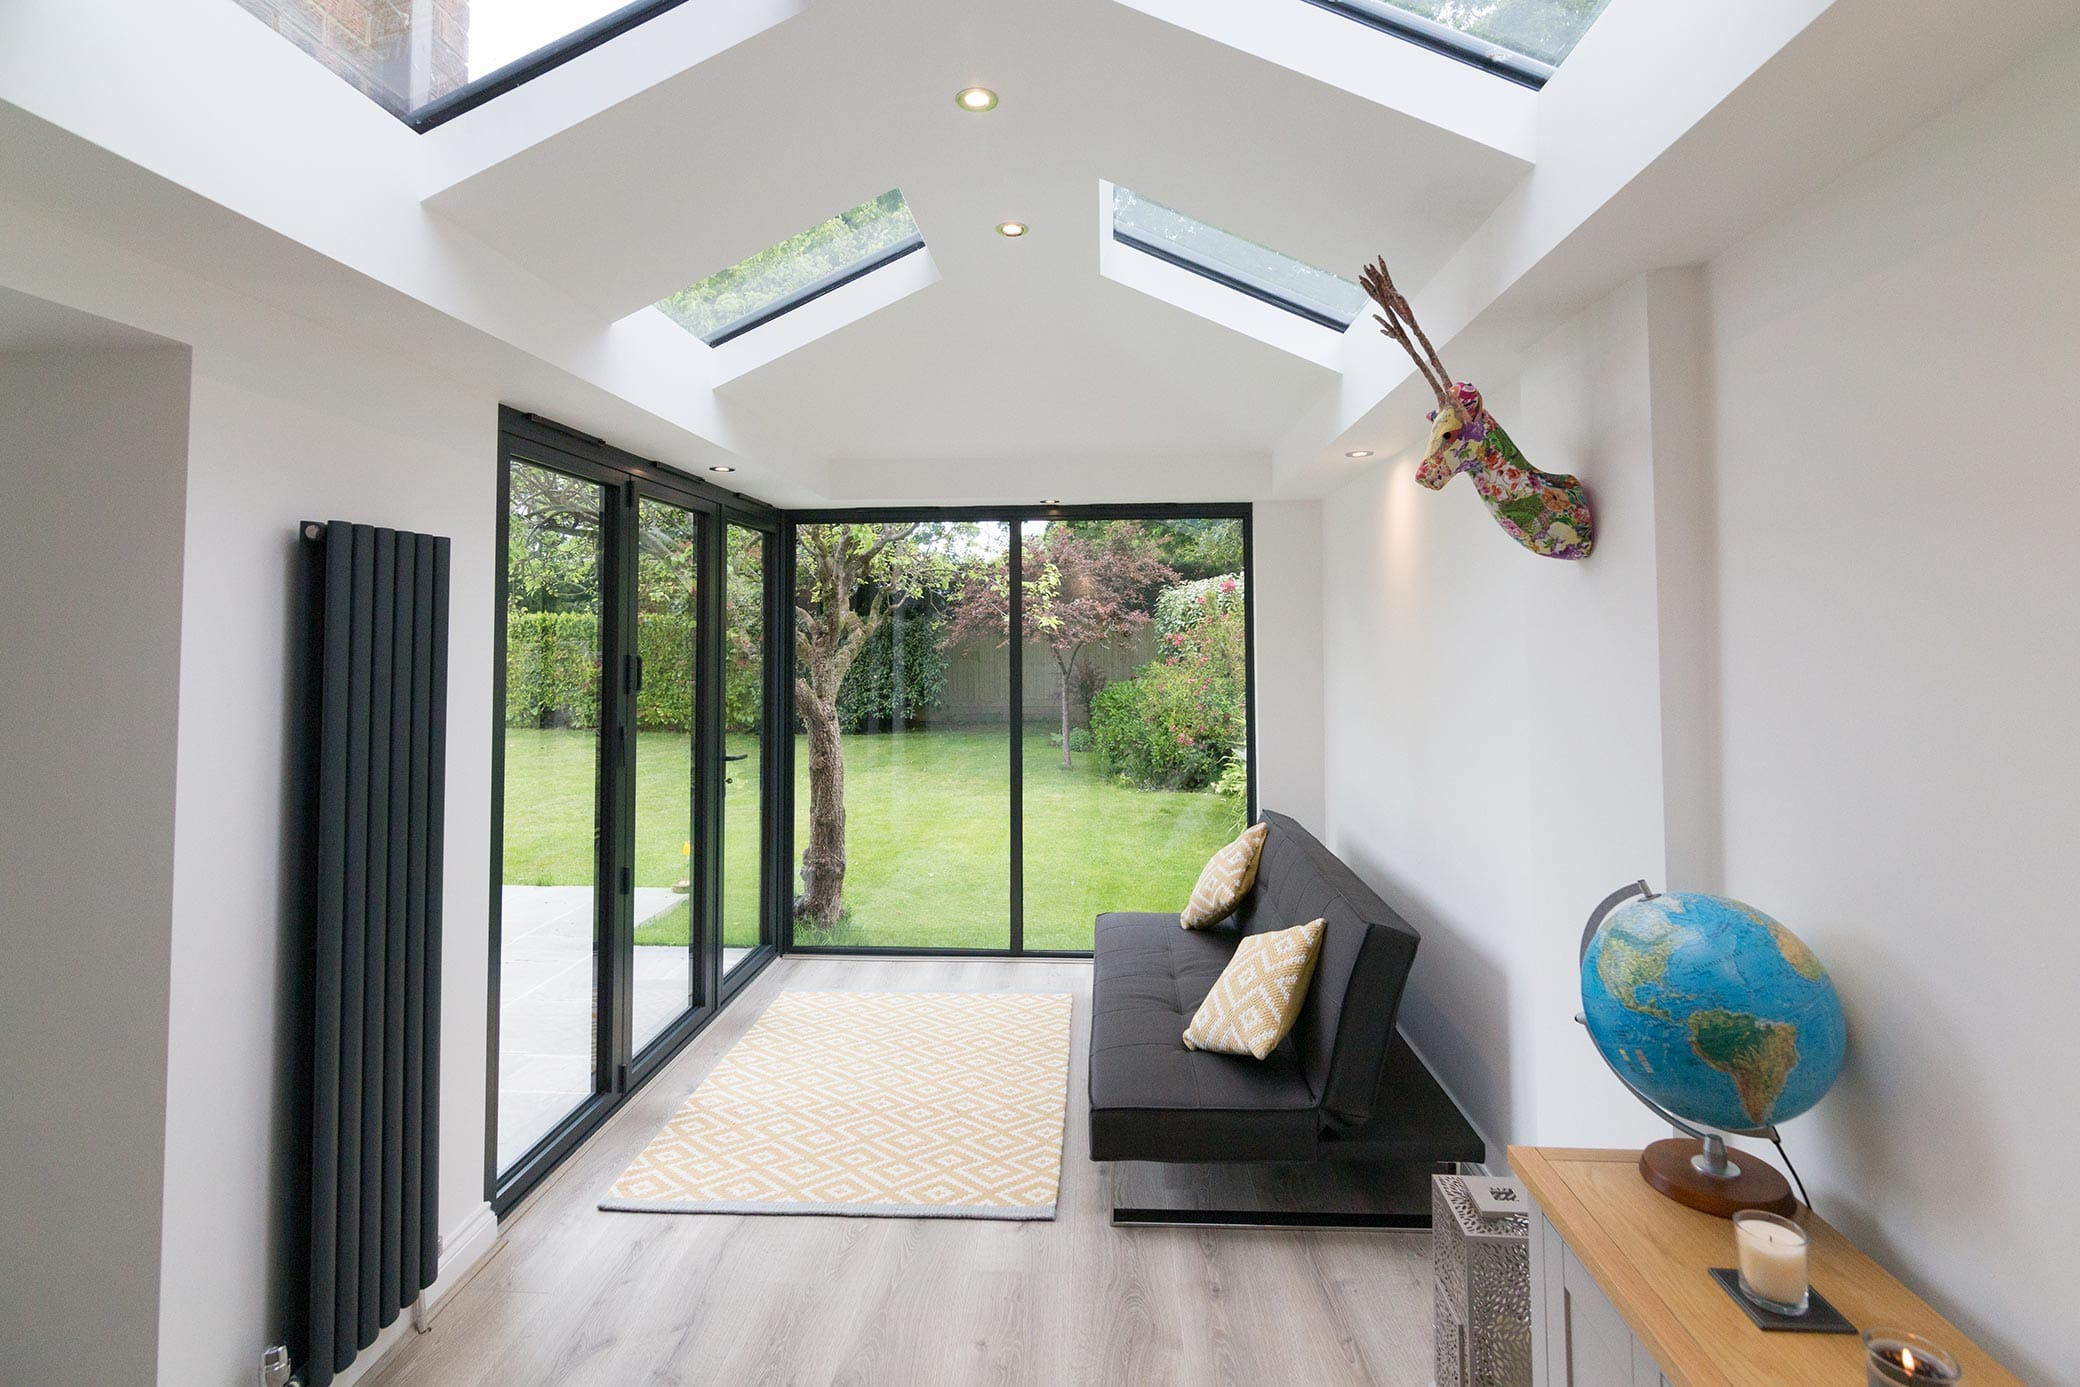 Conservatory Roof Replacement Costs Yorkshire